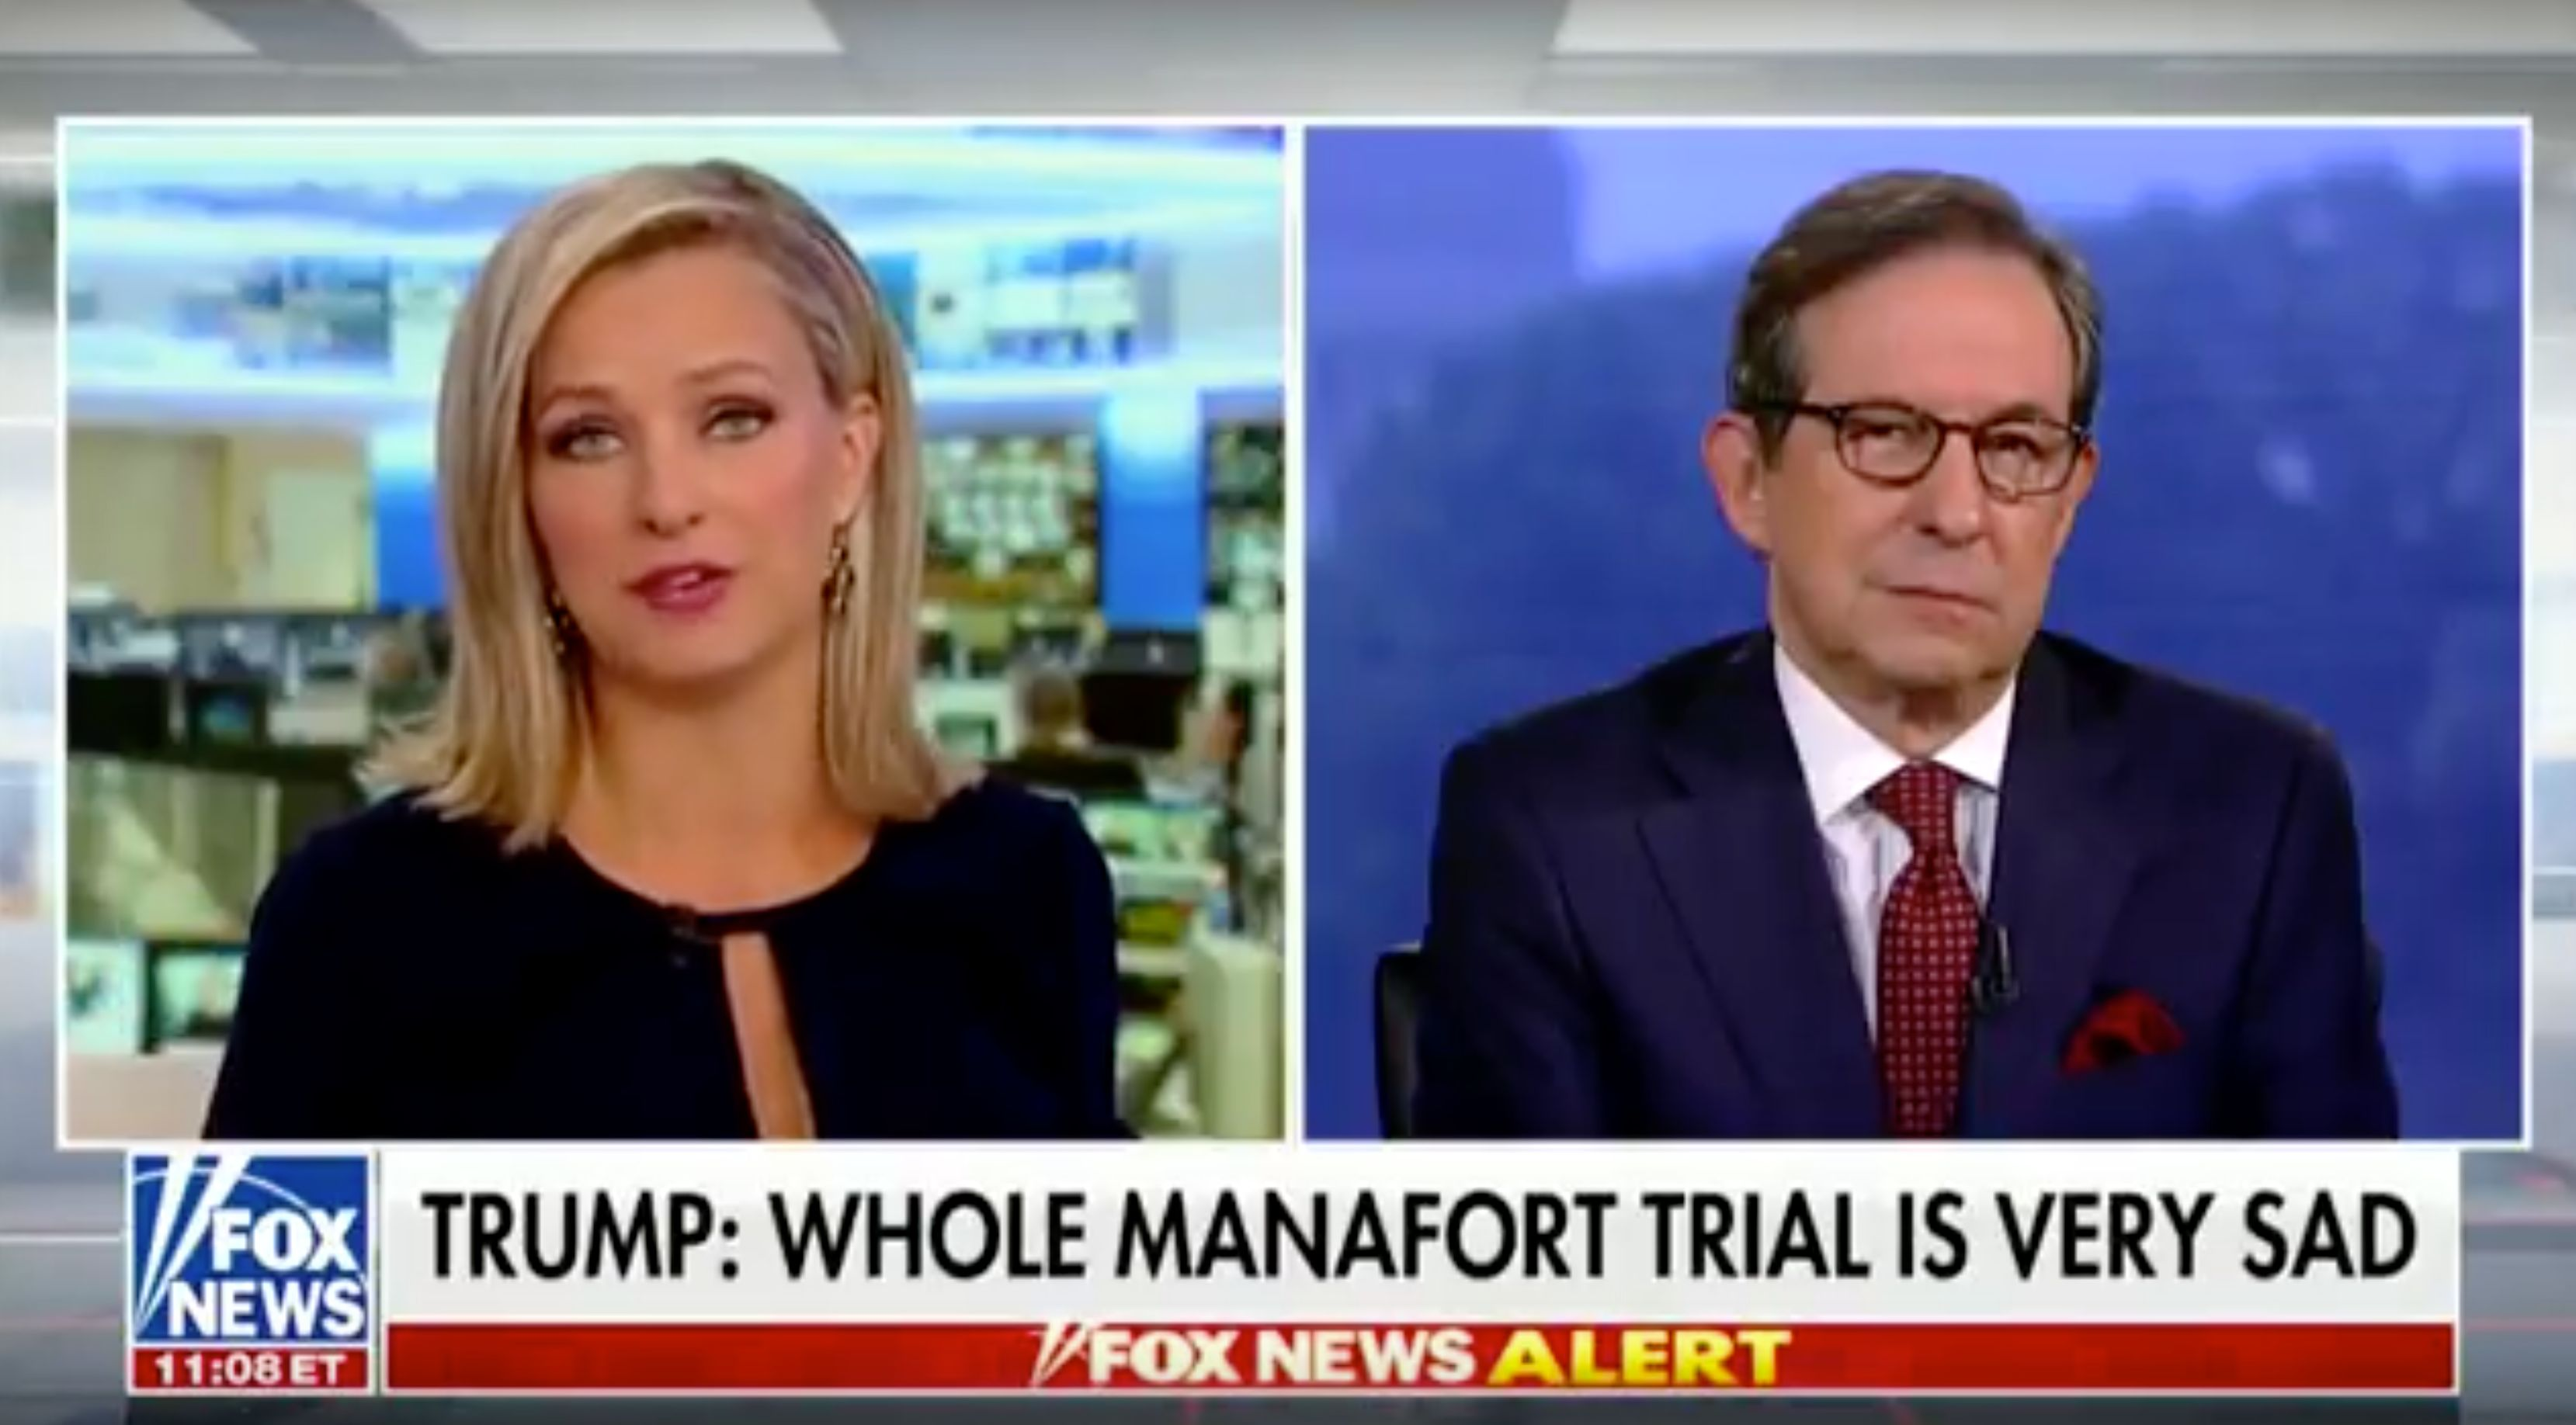 Fox News Chris Wallace Criticizes Trump For Commenting On Paul Manafort Trial